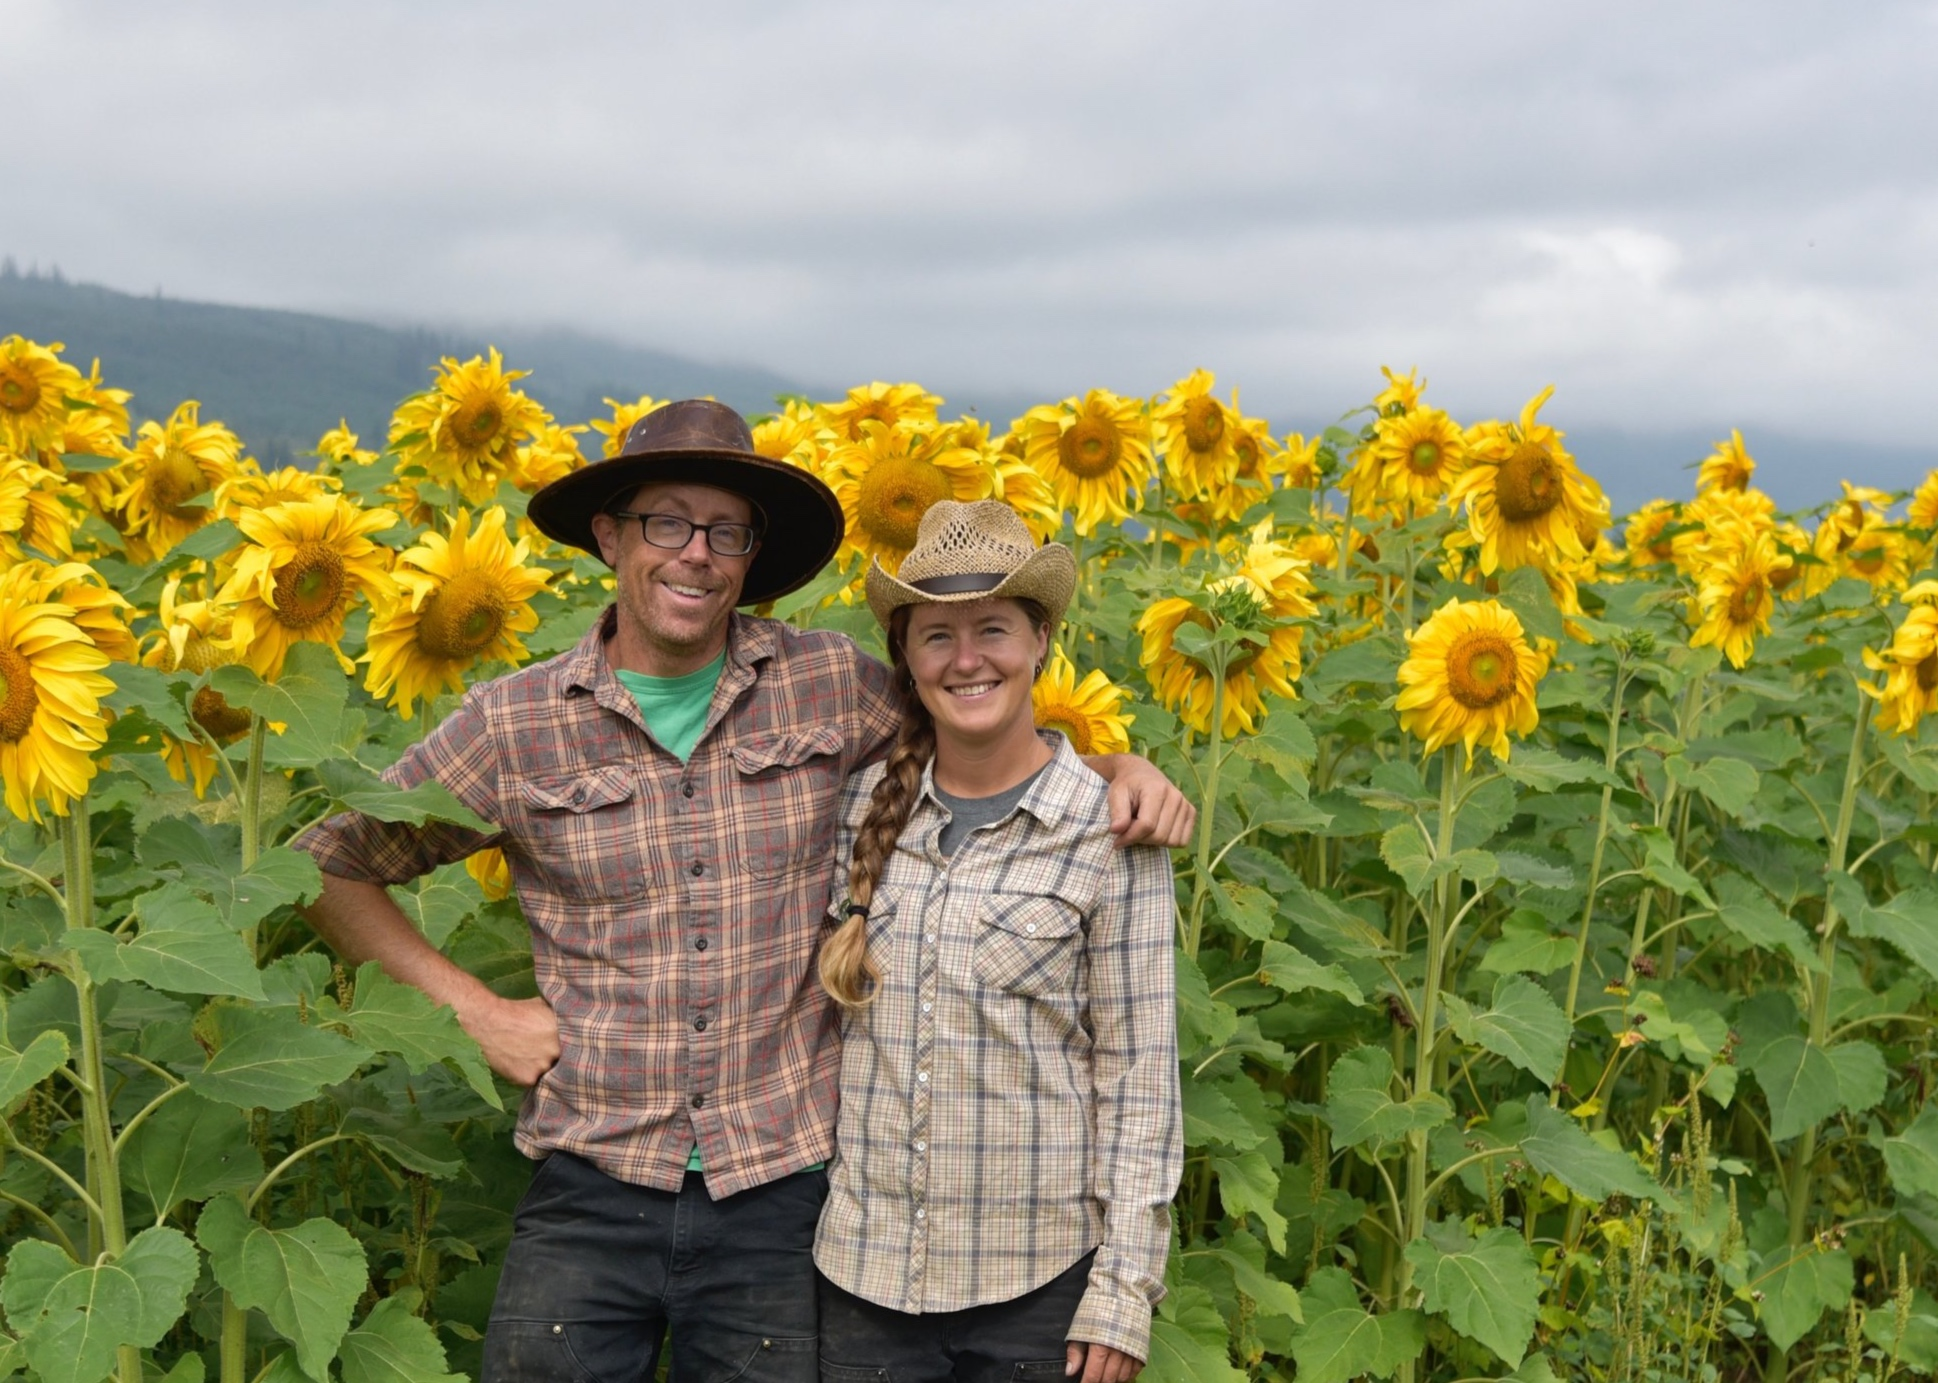 Sited along the South Fork of the Nooksack River, these fields are farmed by Margaret Gerard and Nick Guilford.Together, they grow and sell over 300 different items to cooks and gardeners in the Puget Sound region.Thanks for all your support! -